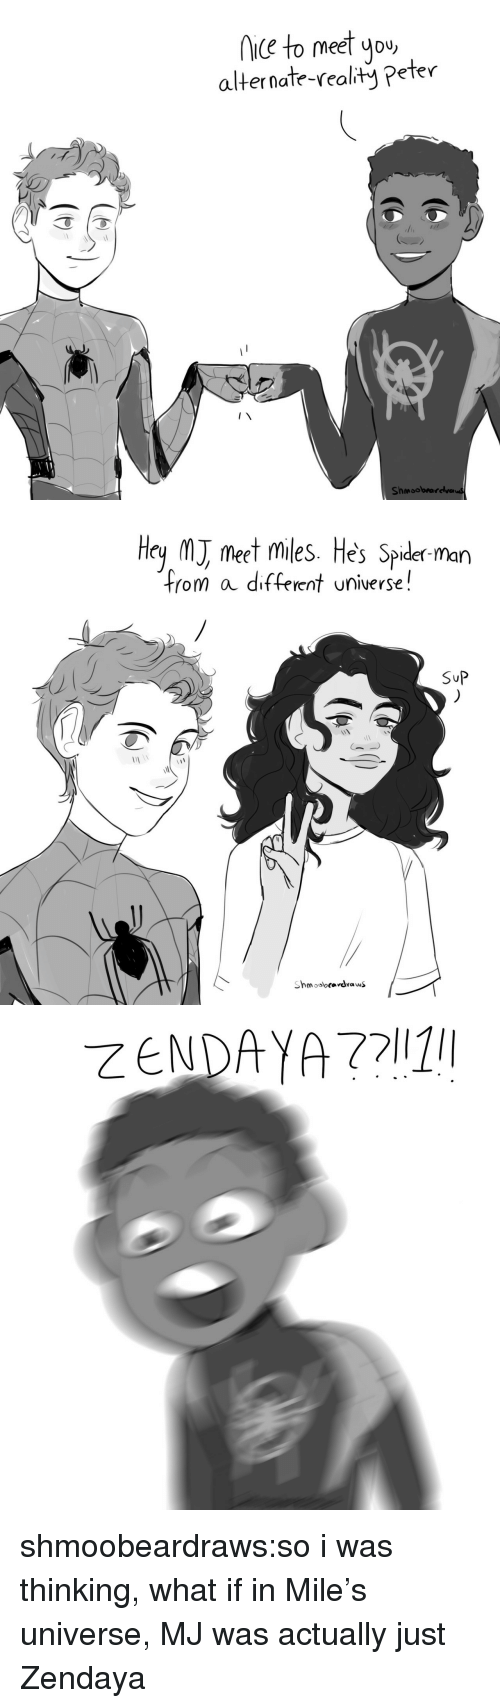 Zendaya: iC to meet you  alternate-realty Peter  Shmoobrarelva   Hey M meet miles. He's Spider man  from a different universe!  SuP shmoobeardraws:so i was thinking, what if in Mile's universe, MJ was actually just Zendaya